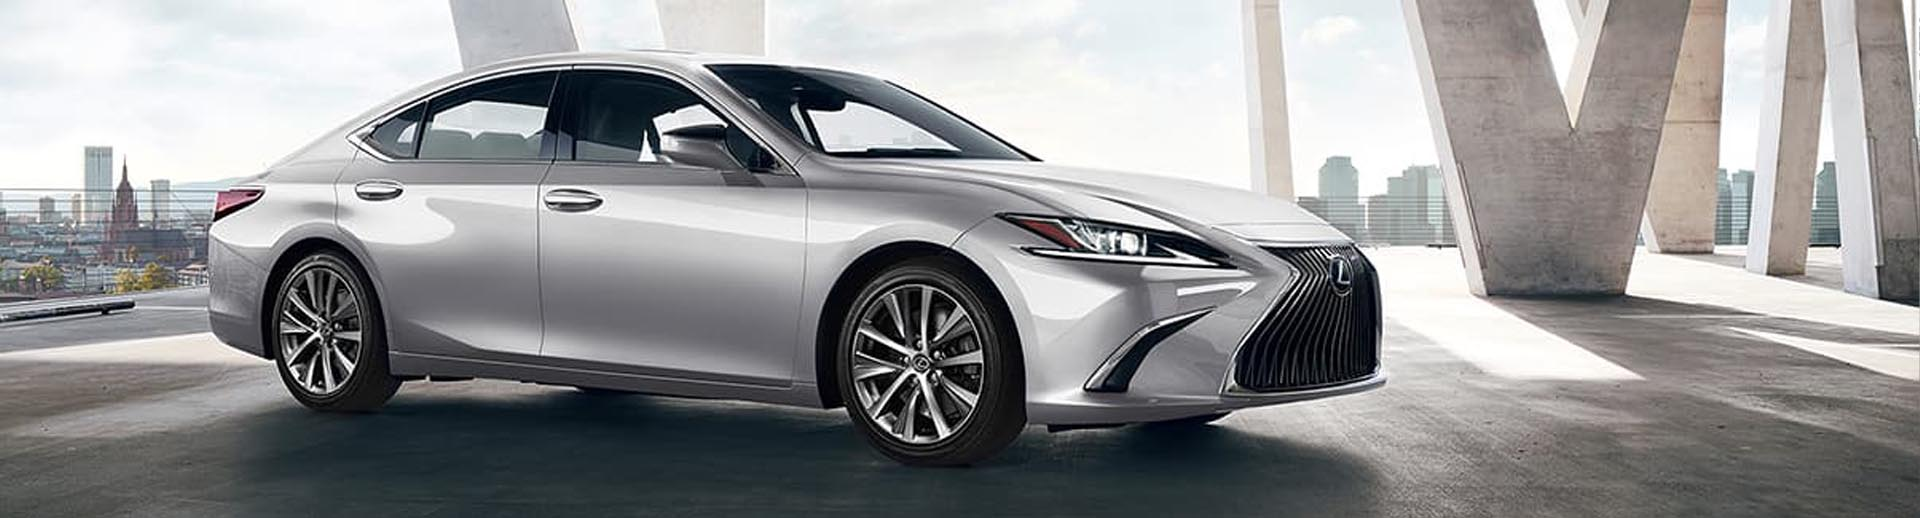 2020 Lexus ES 350 Lifestyle Photo